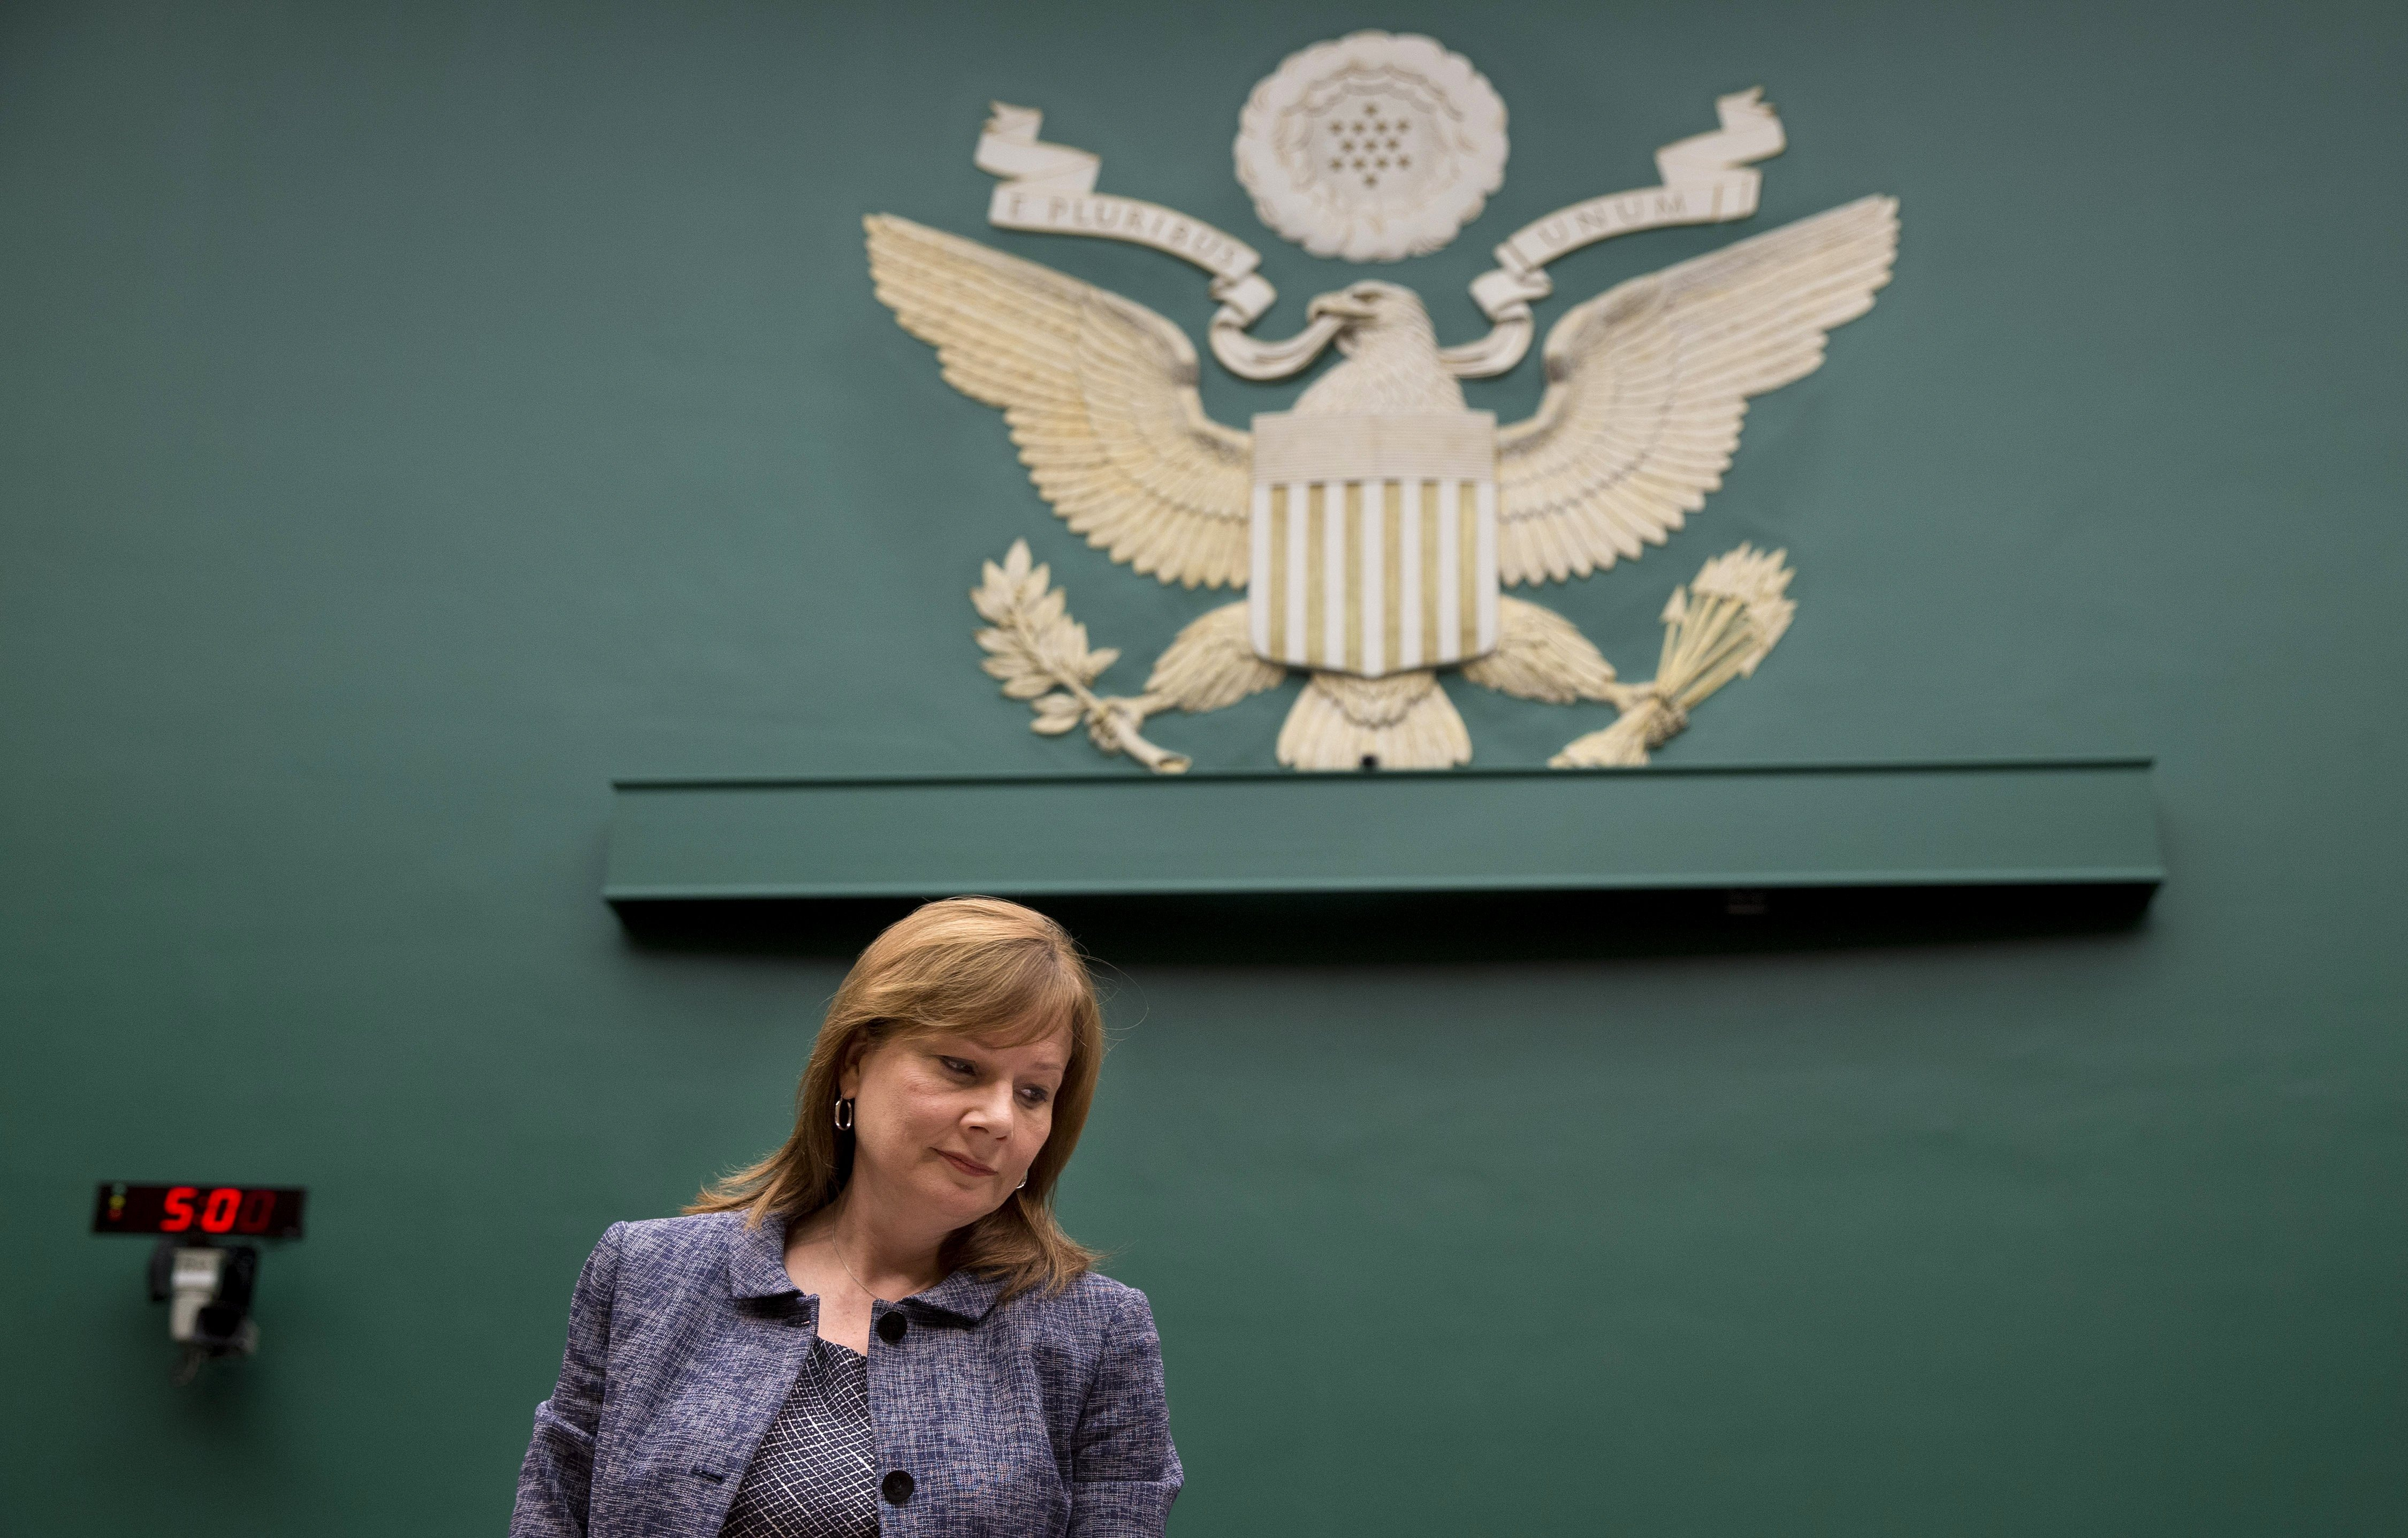 GM CEO Mary Barra takes her seat on Capitol Hill in Washington on April 1, 2014, prior to testifying before the House Energy and Commerce Subcommittee on Oversight and Investigations